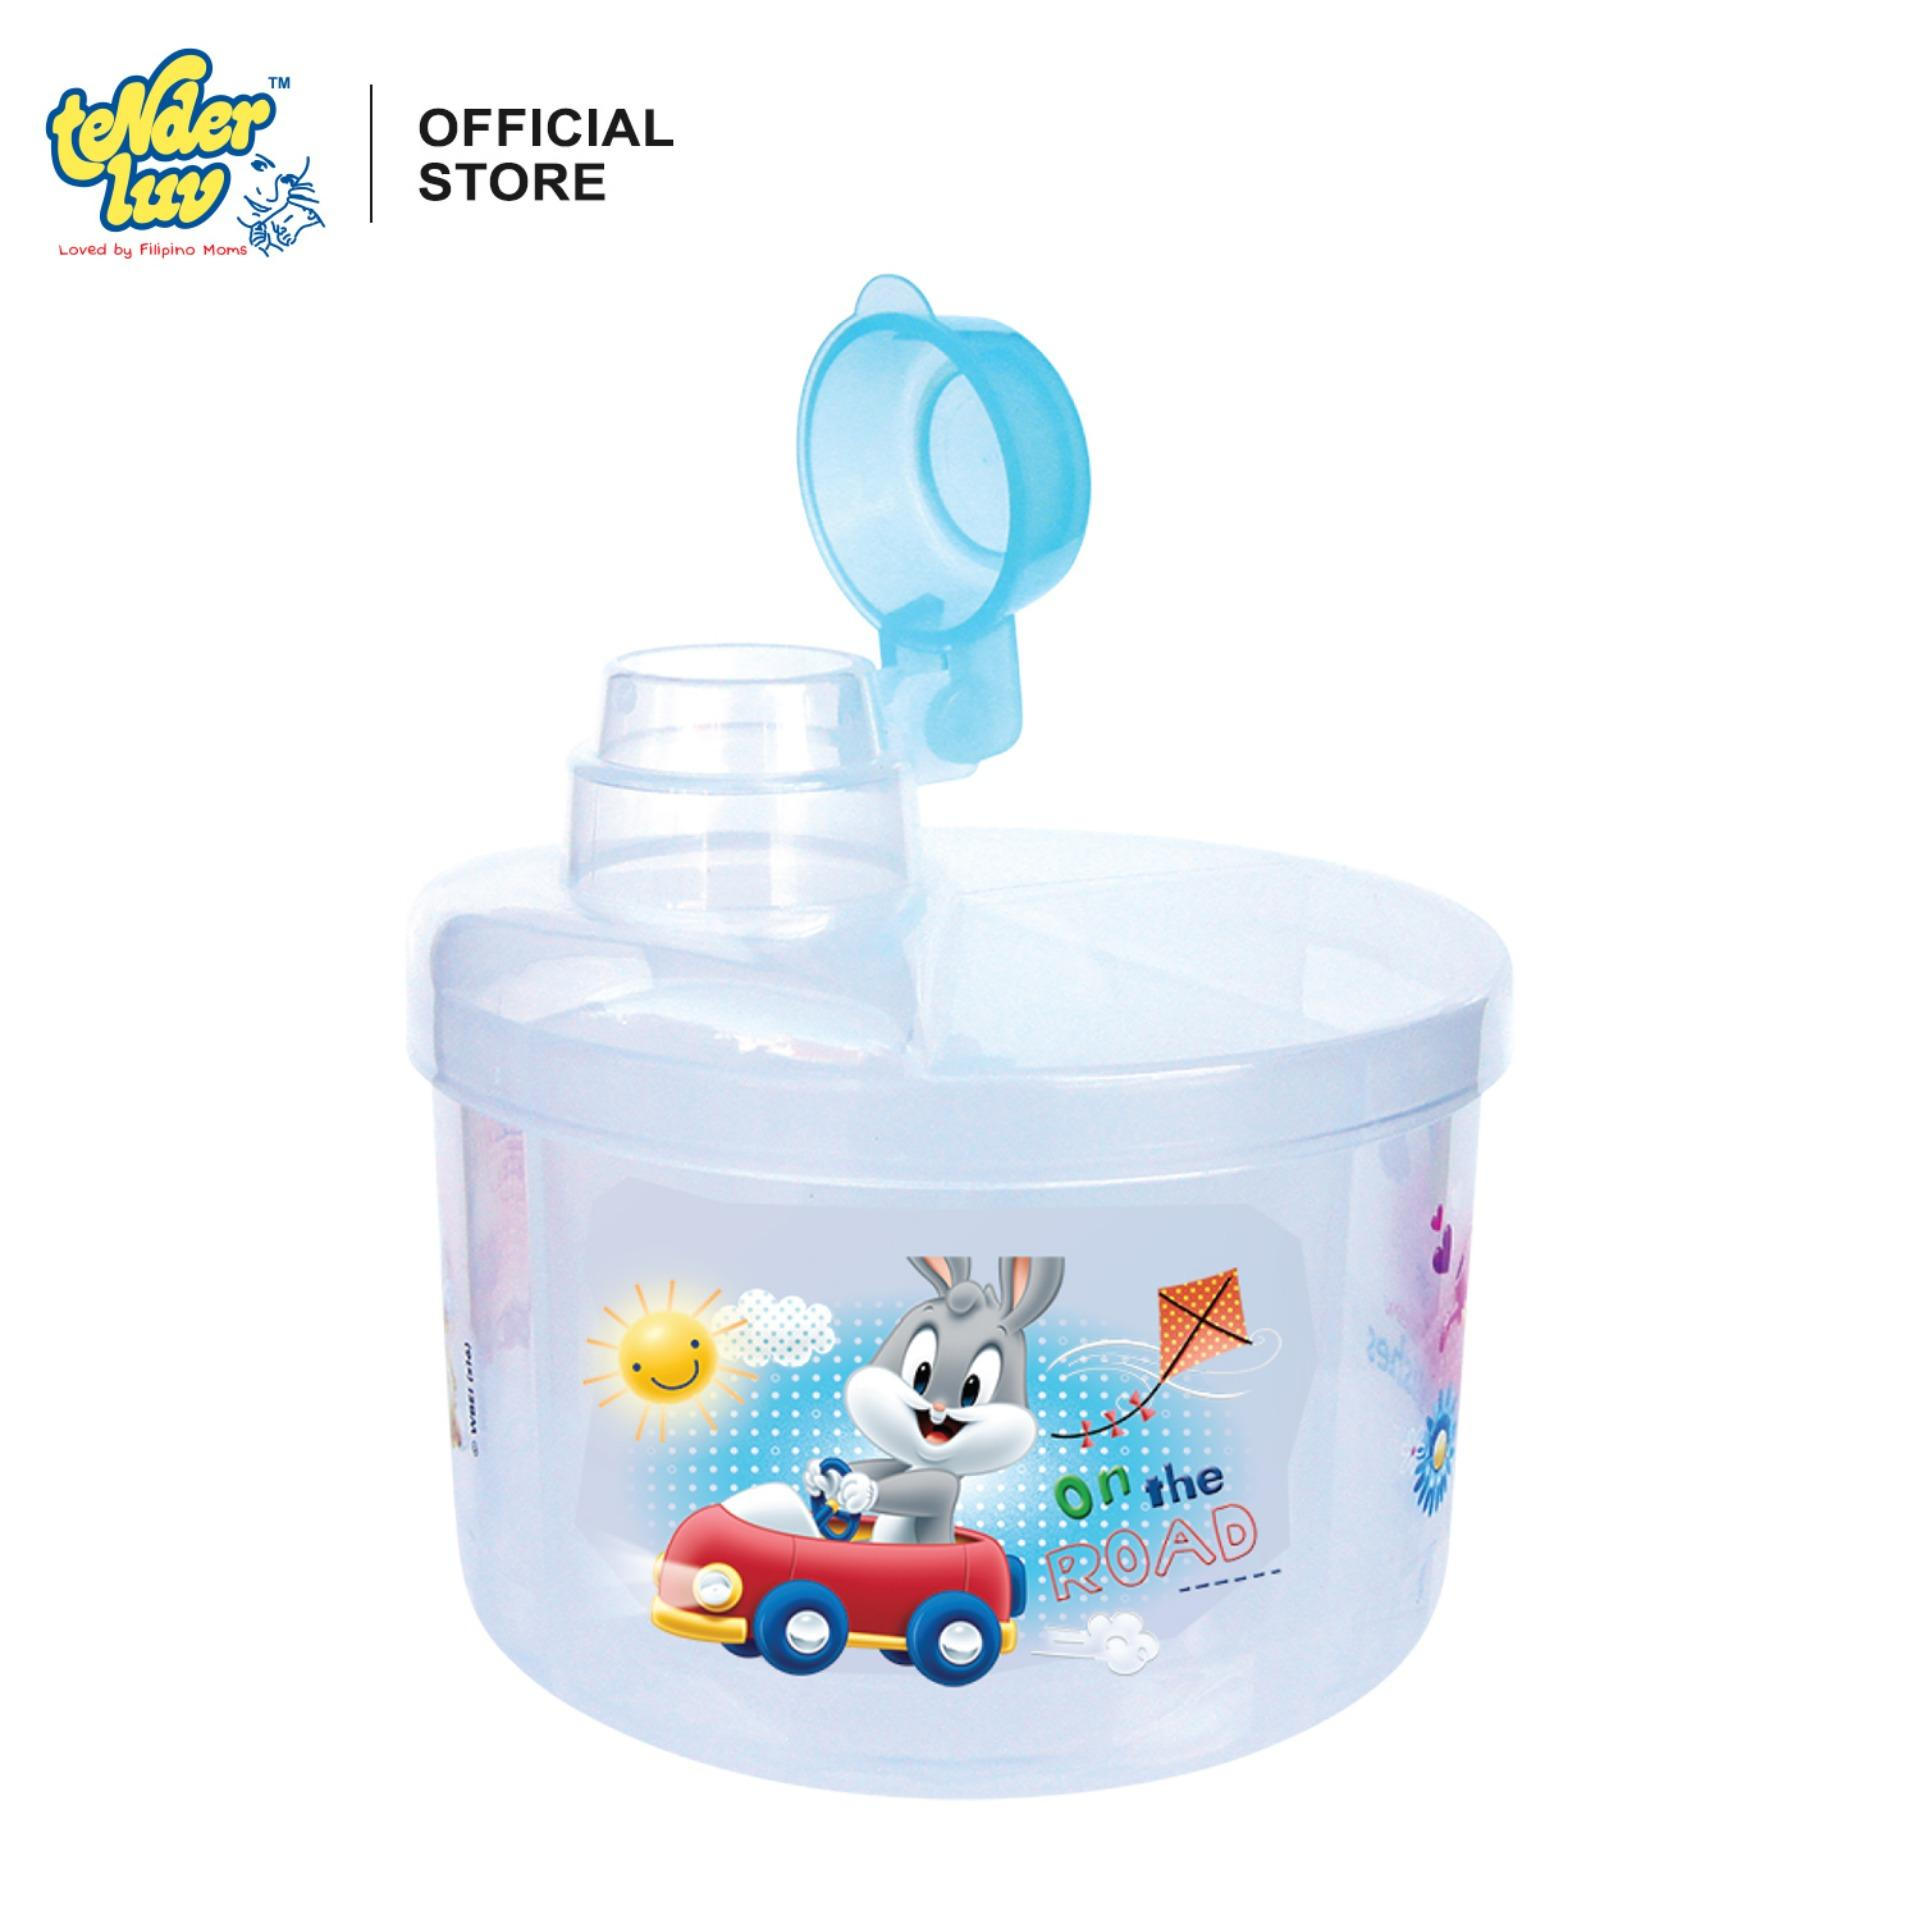 Baby Looney Tunes Milker With Division By Tender Luv.